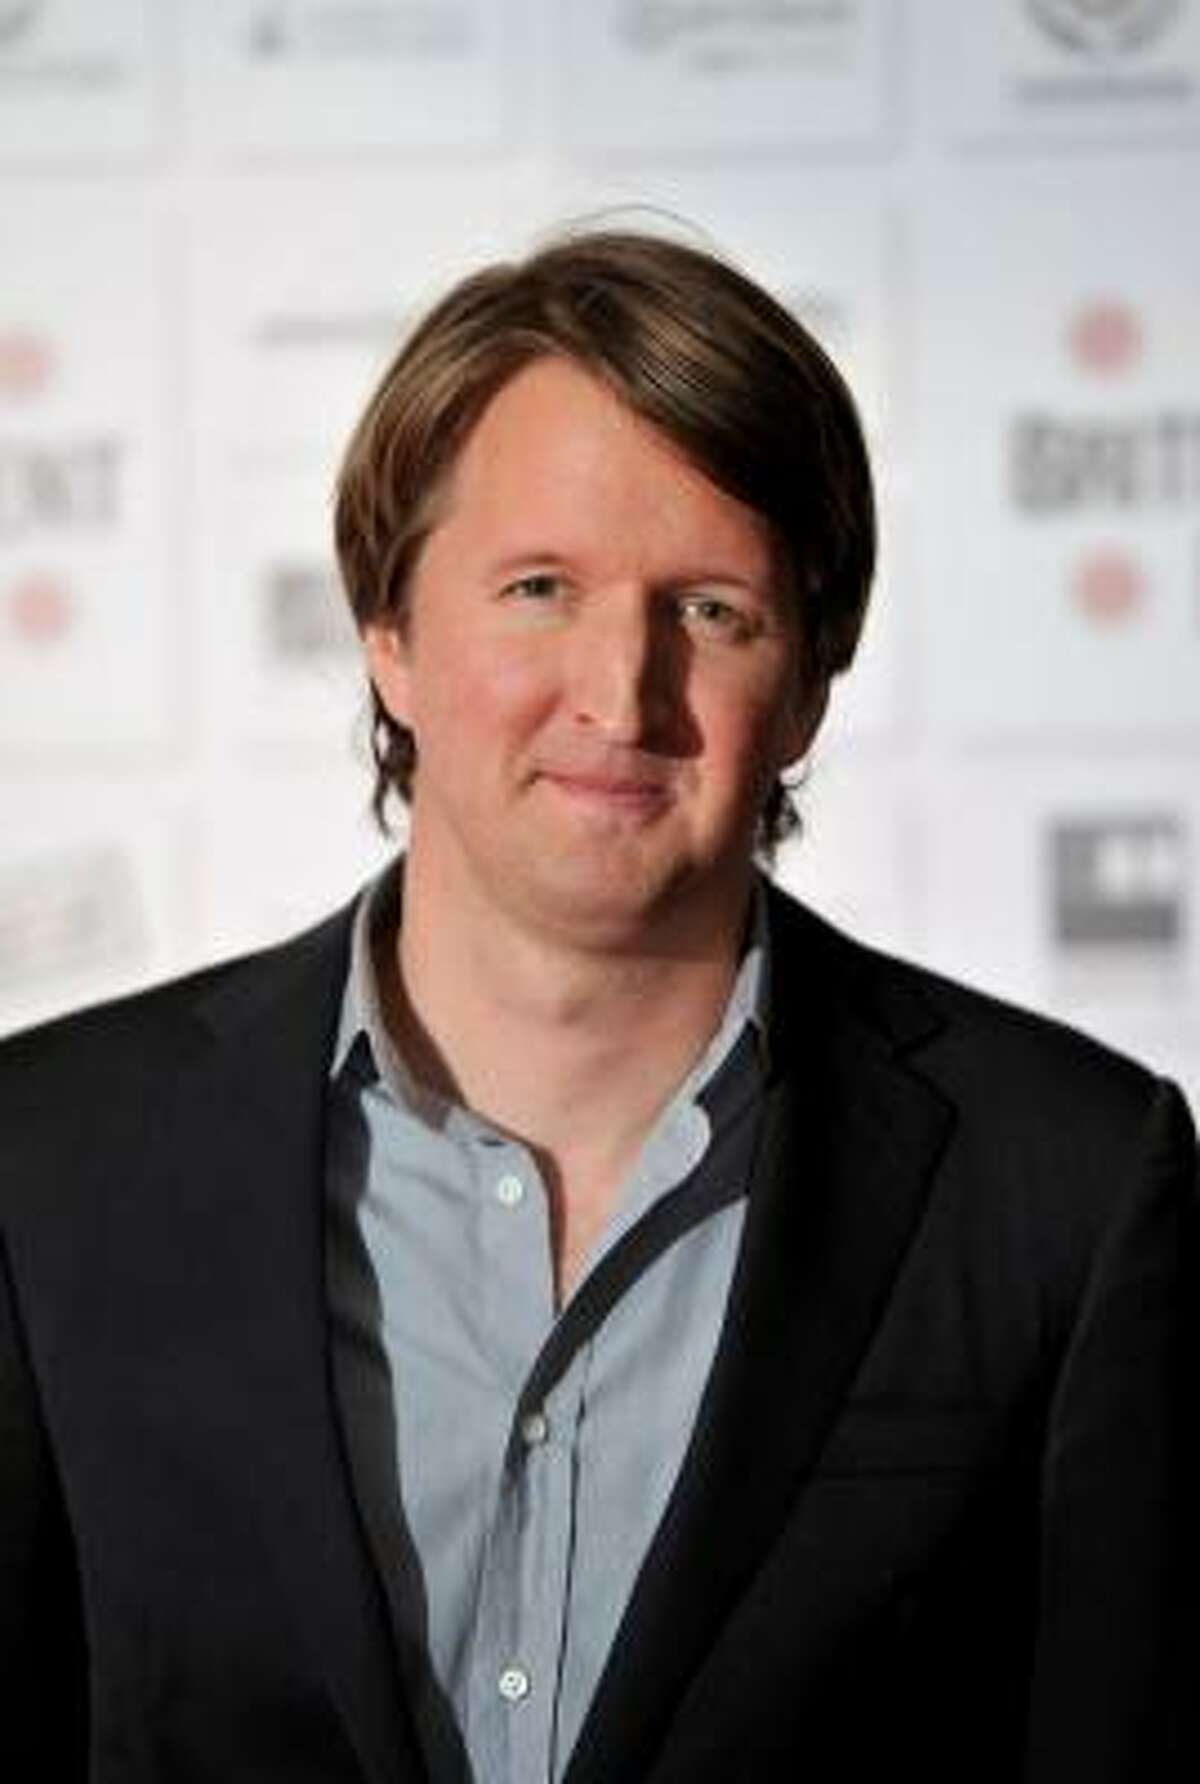 Best Director Tom Hooper for The King's Speech